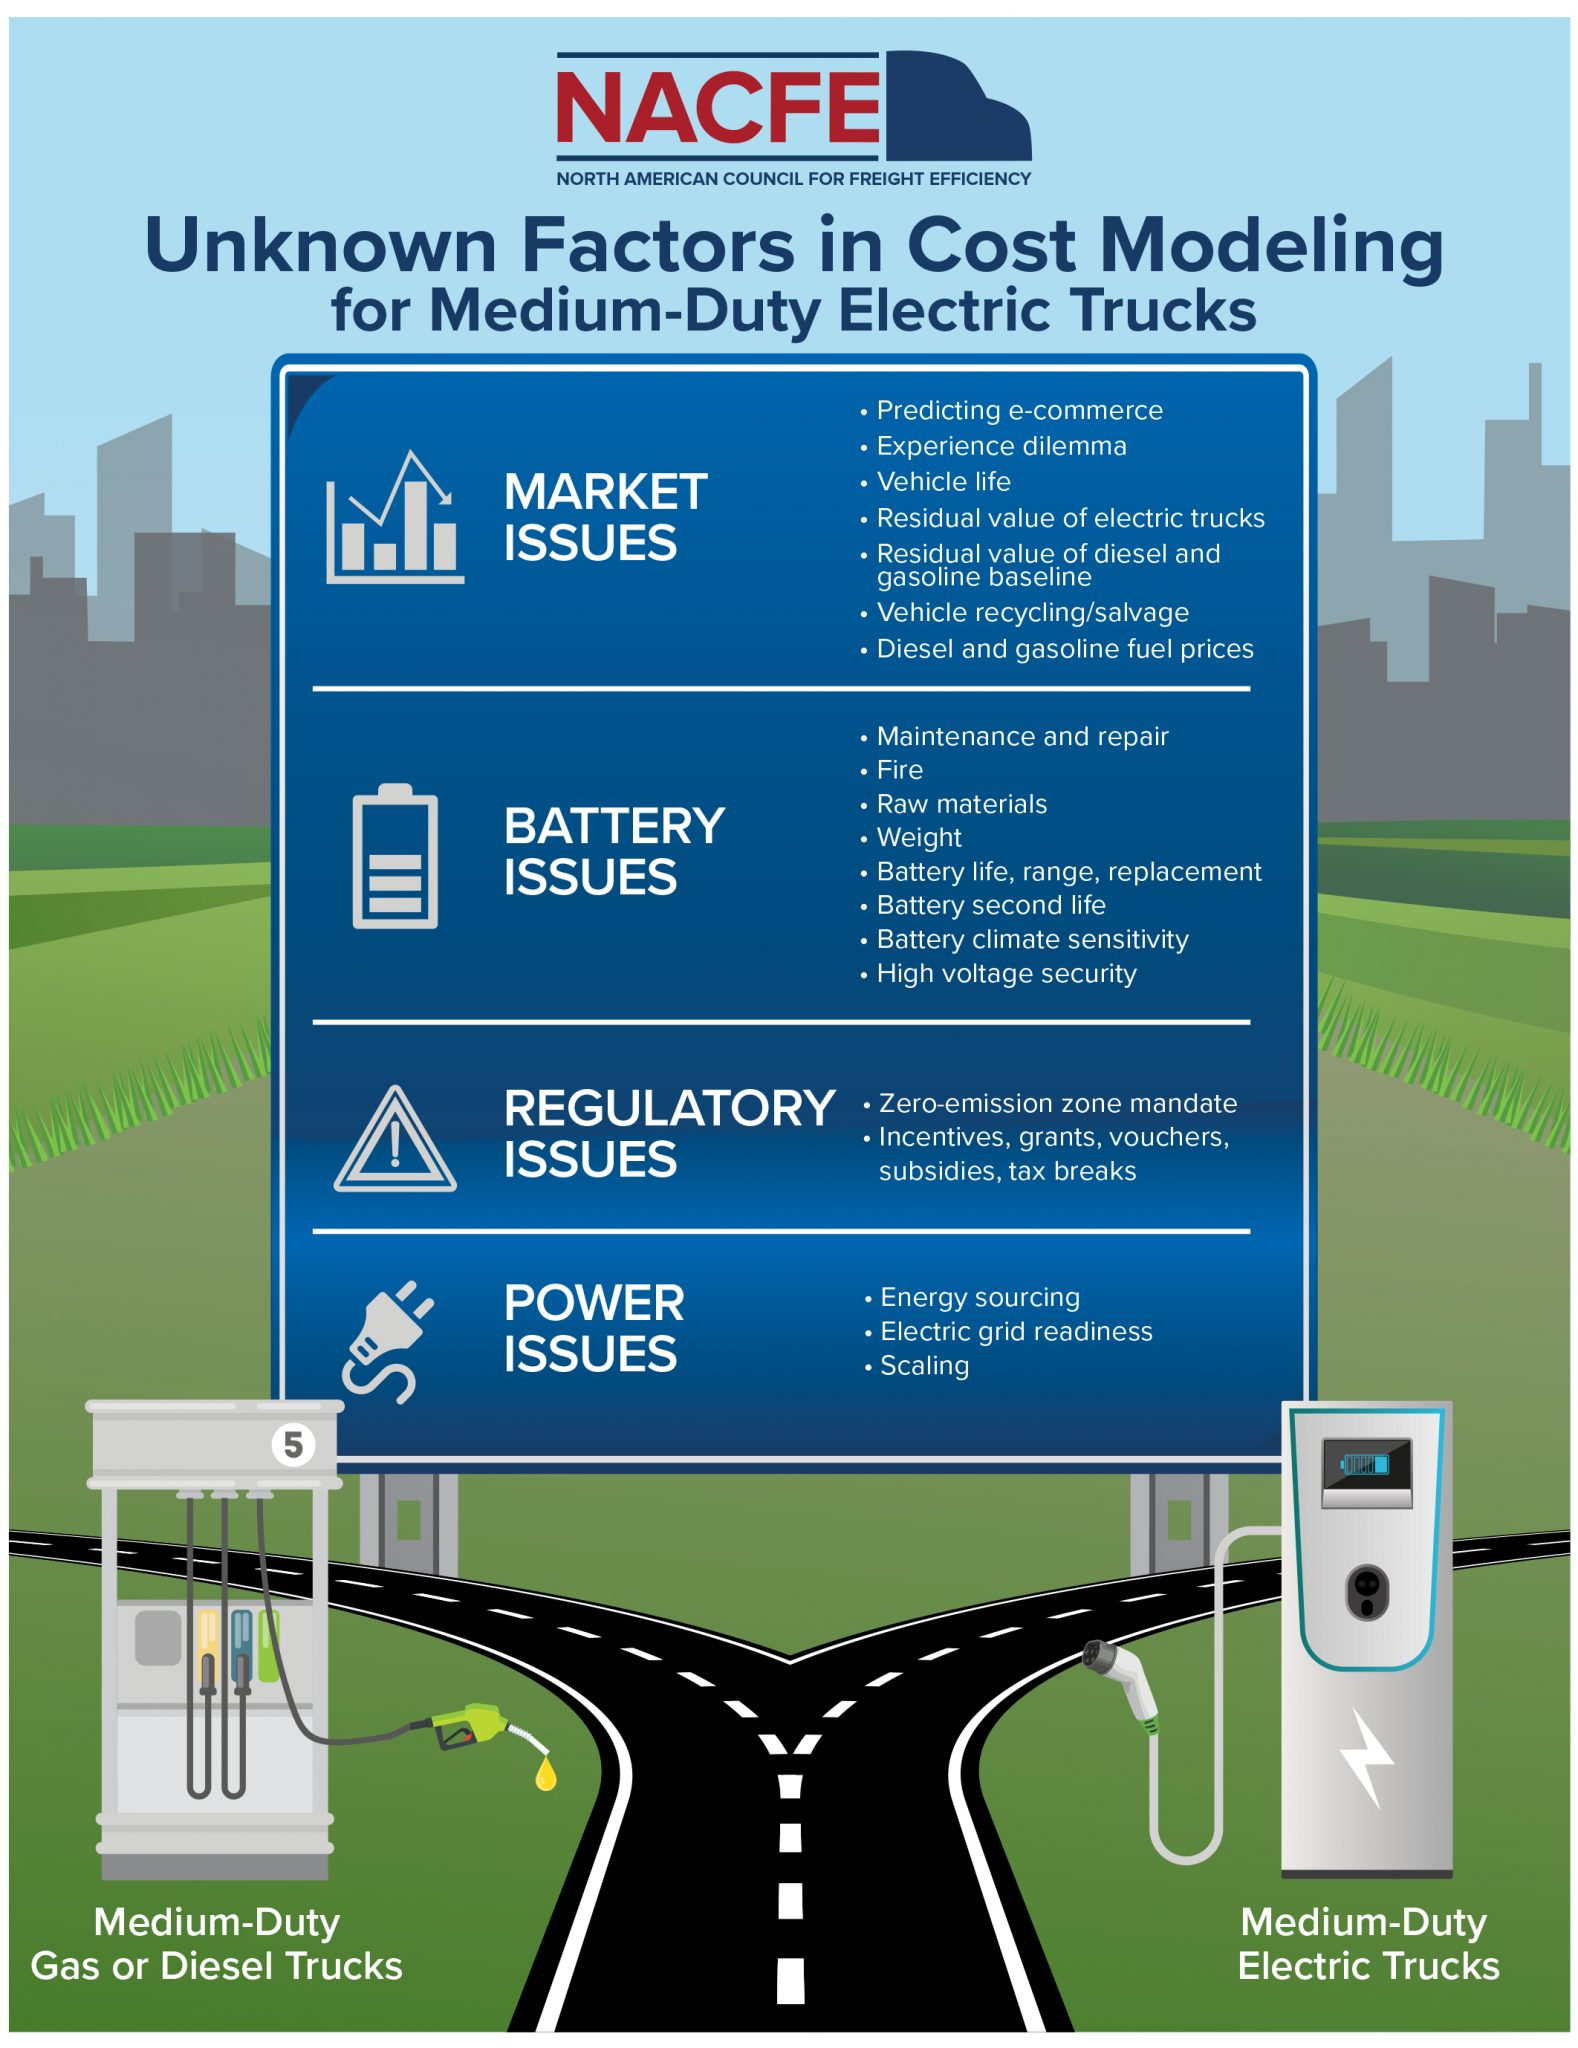 nacfe_midweightelectrictrucks_infographic